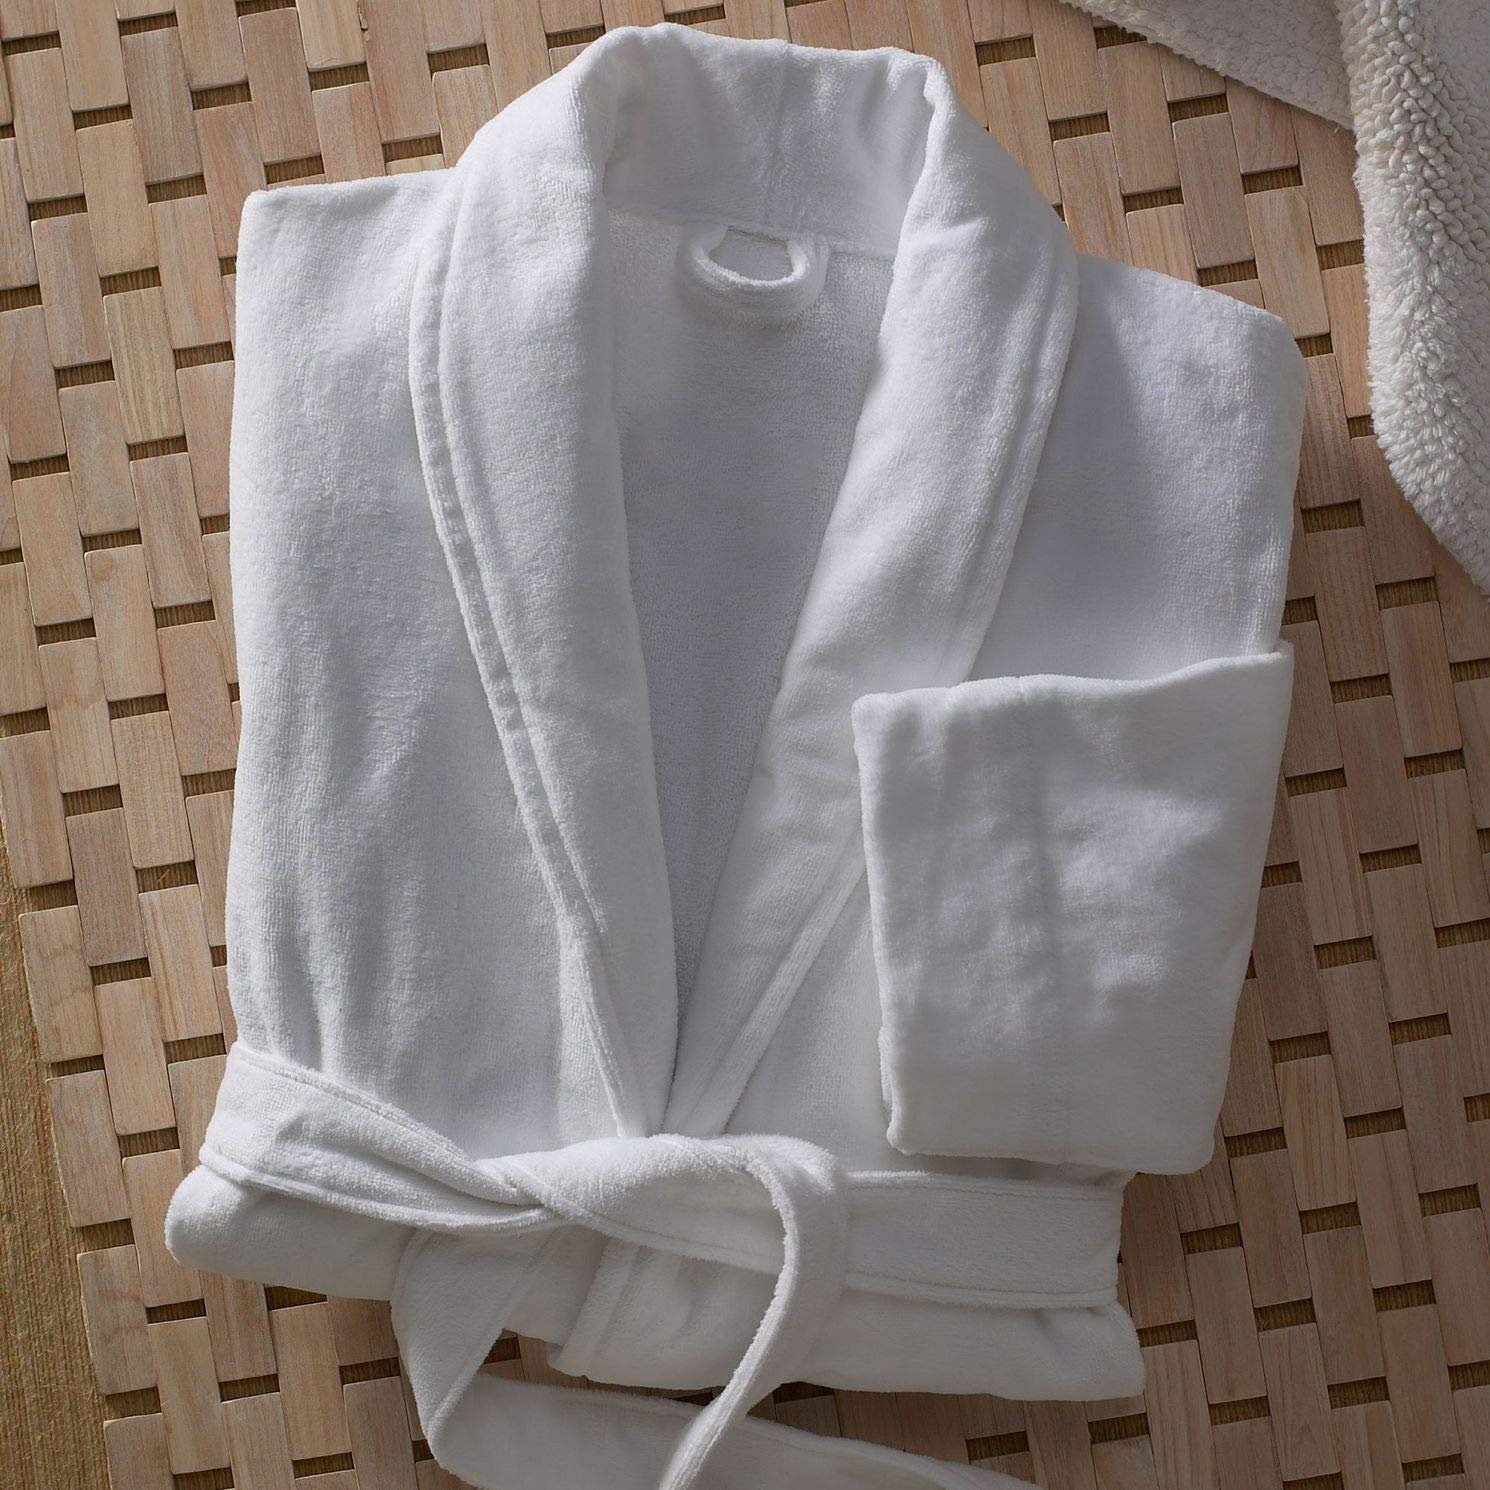 Velour cotton robe from the Marriott Hotel